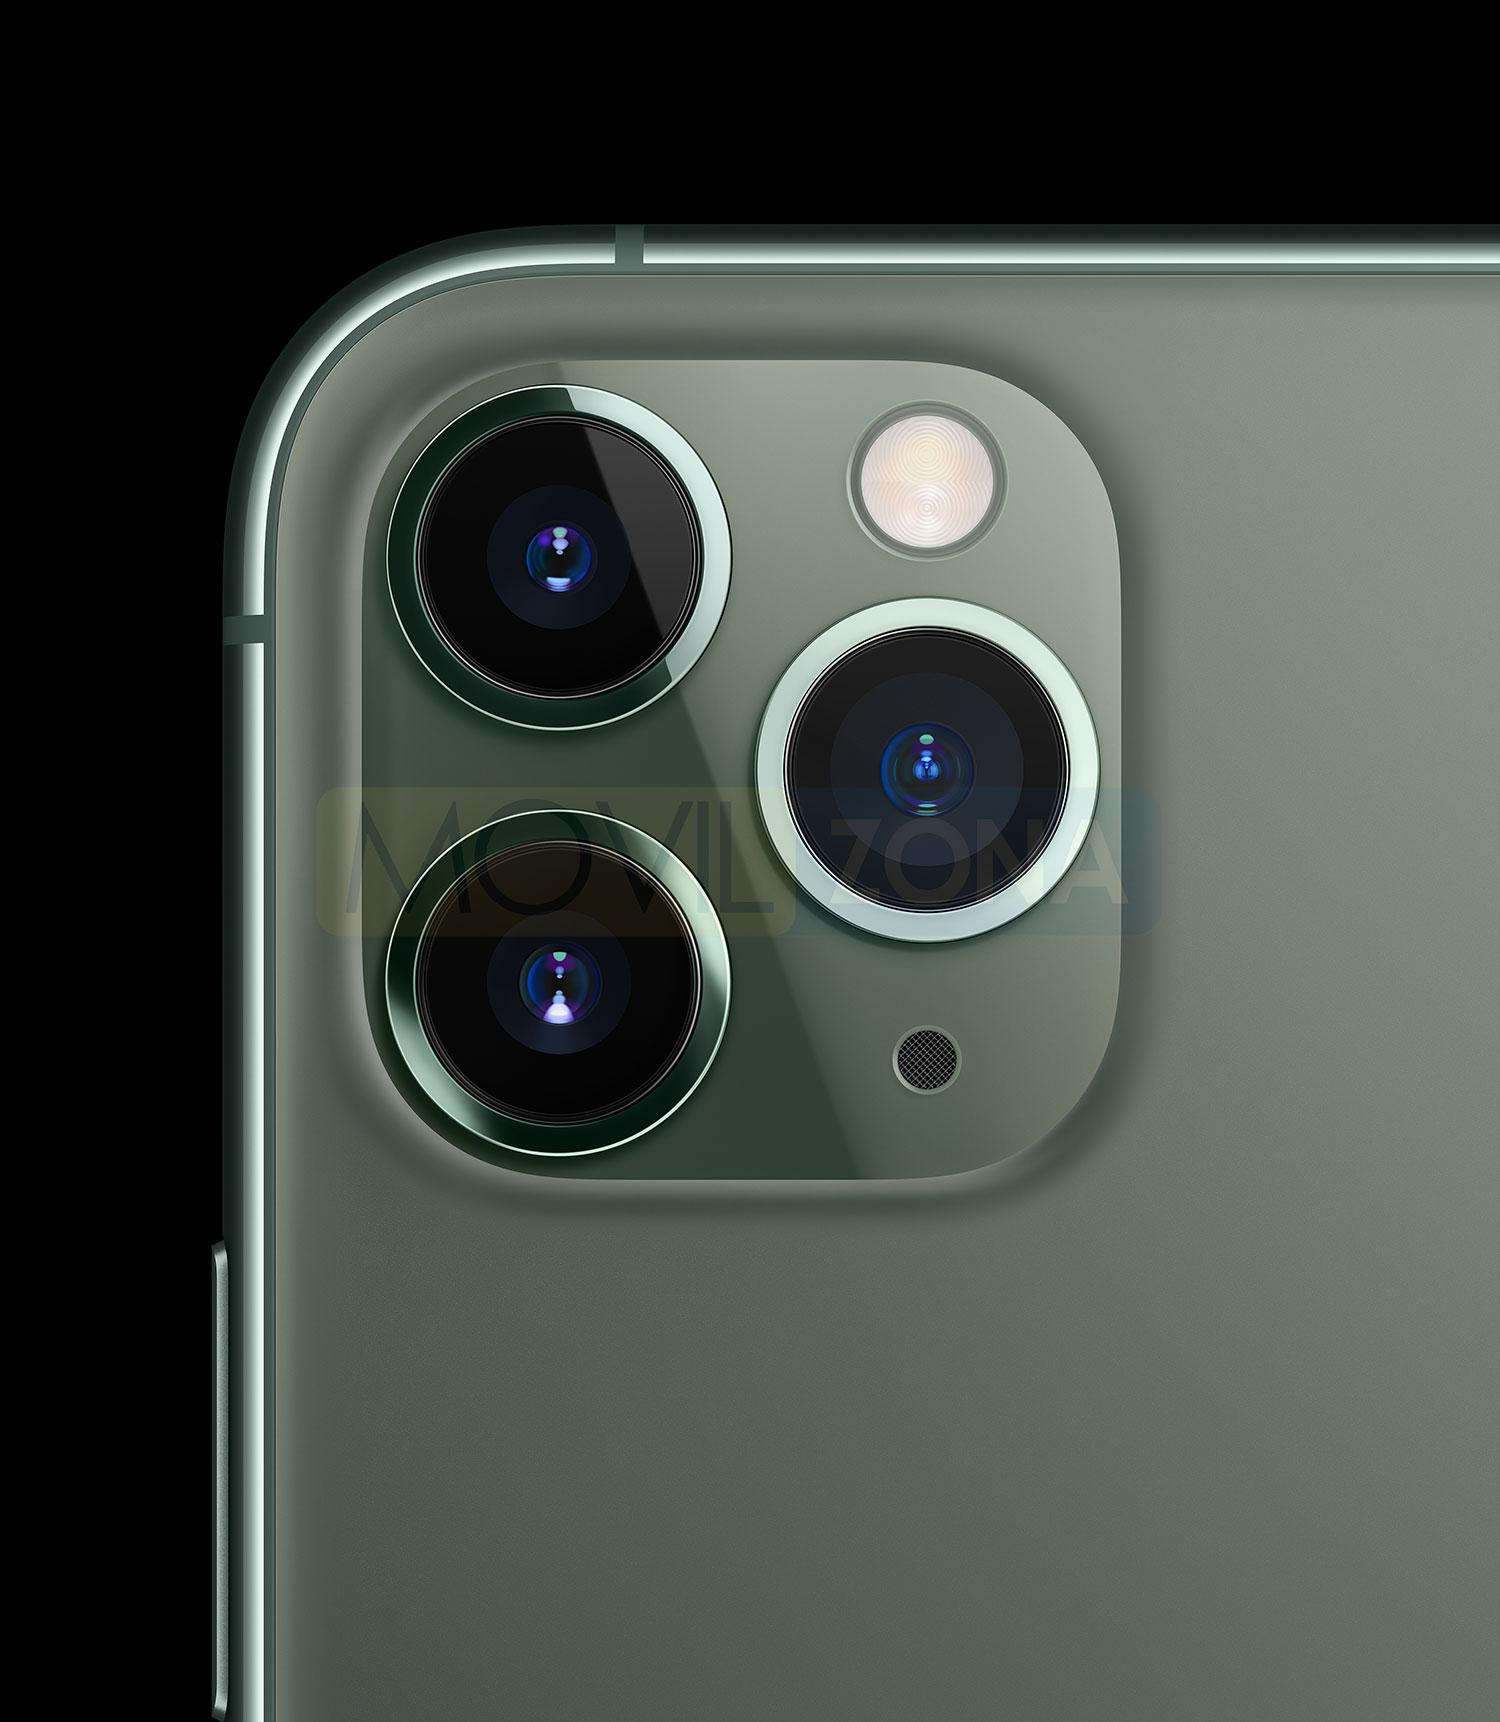 Apple iPhone 11 Pro cámara con tres lentes